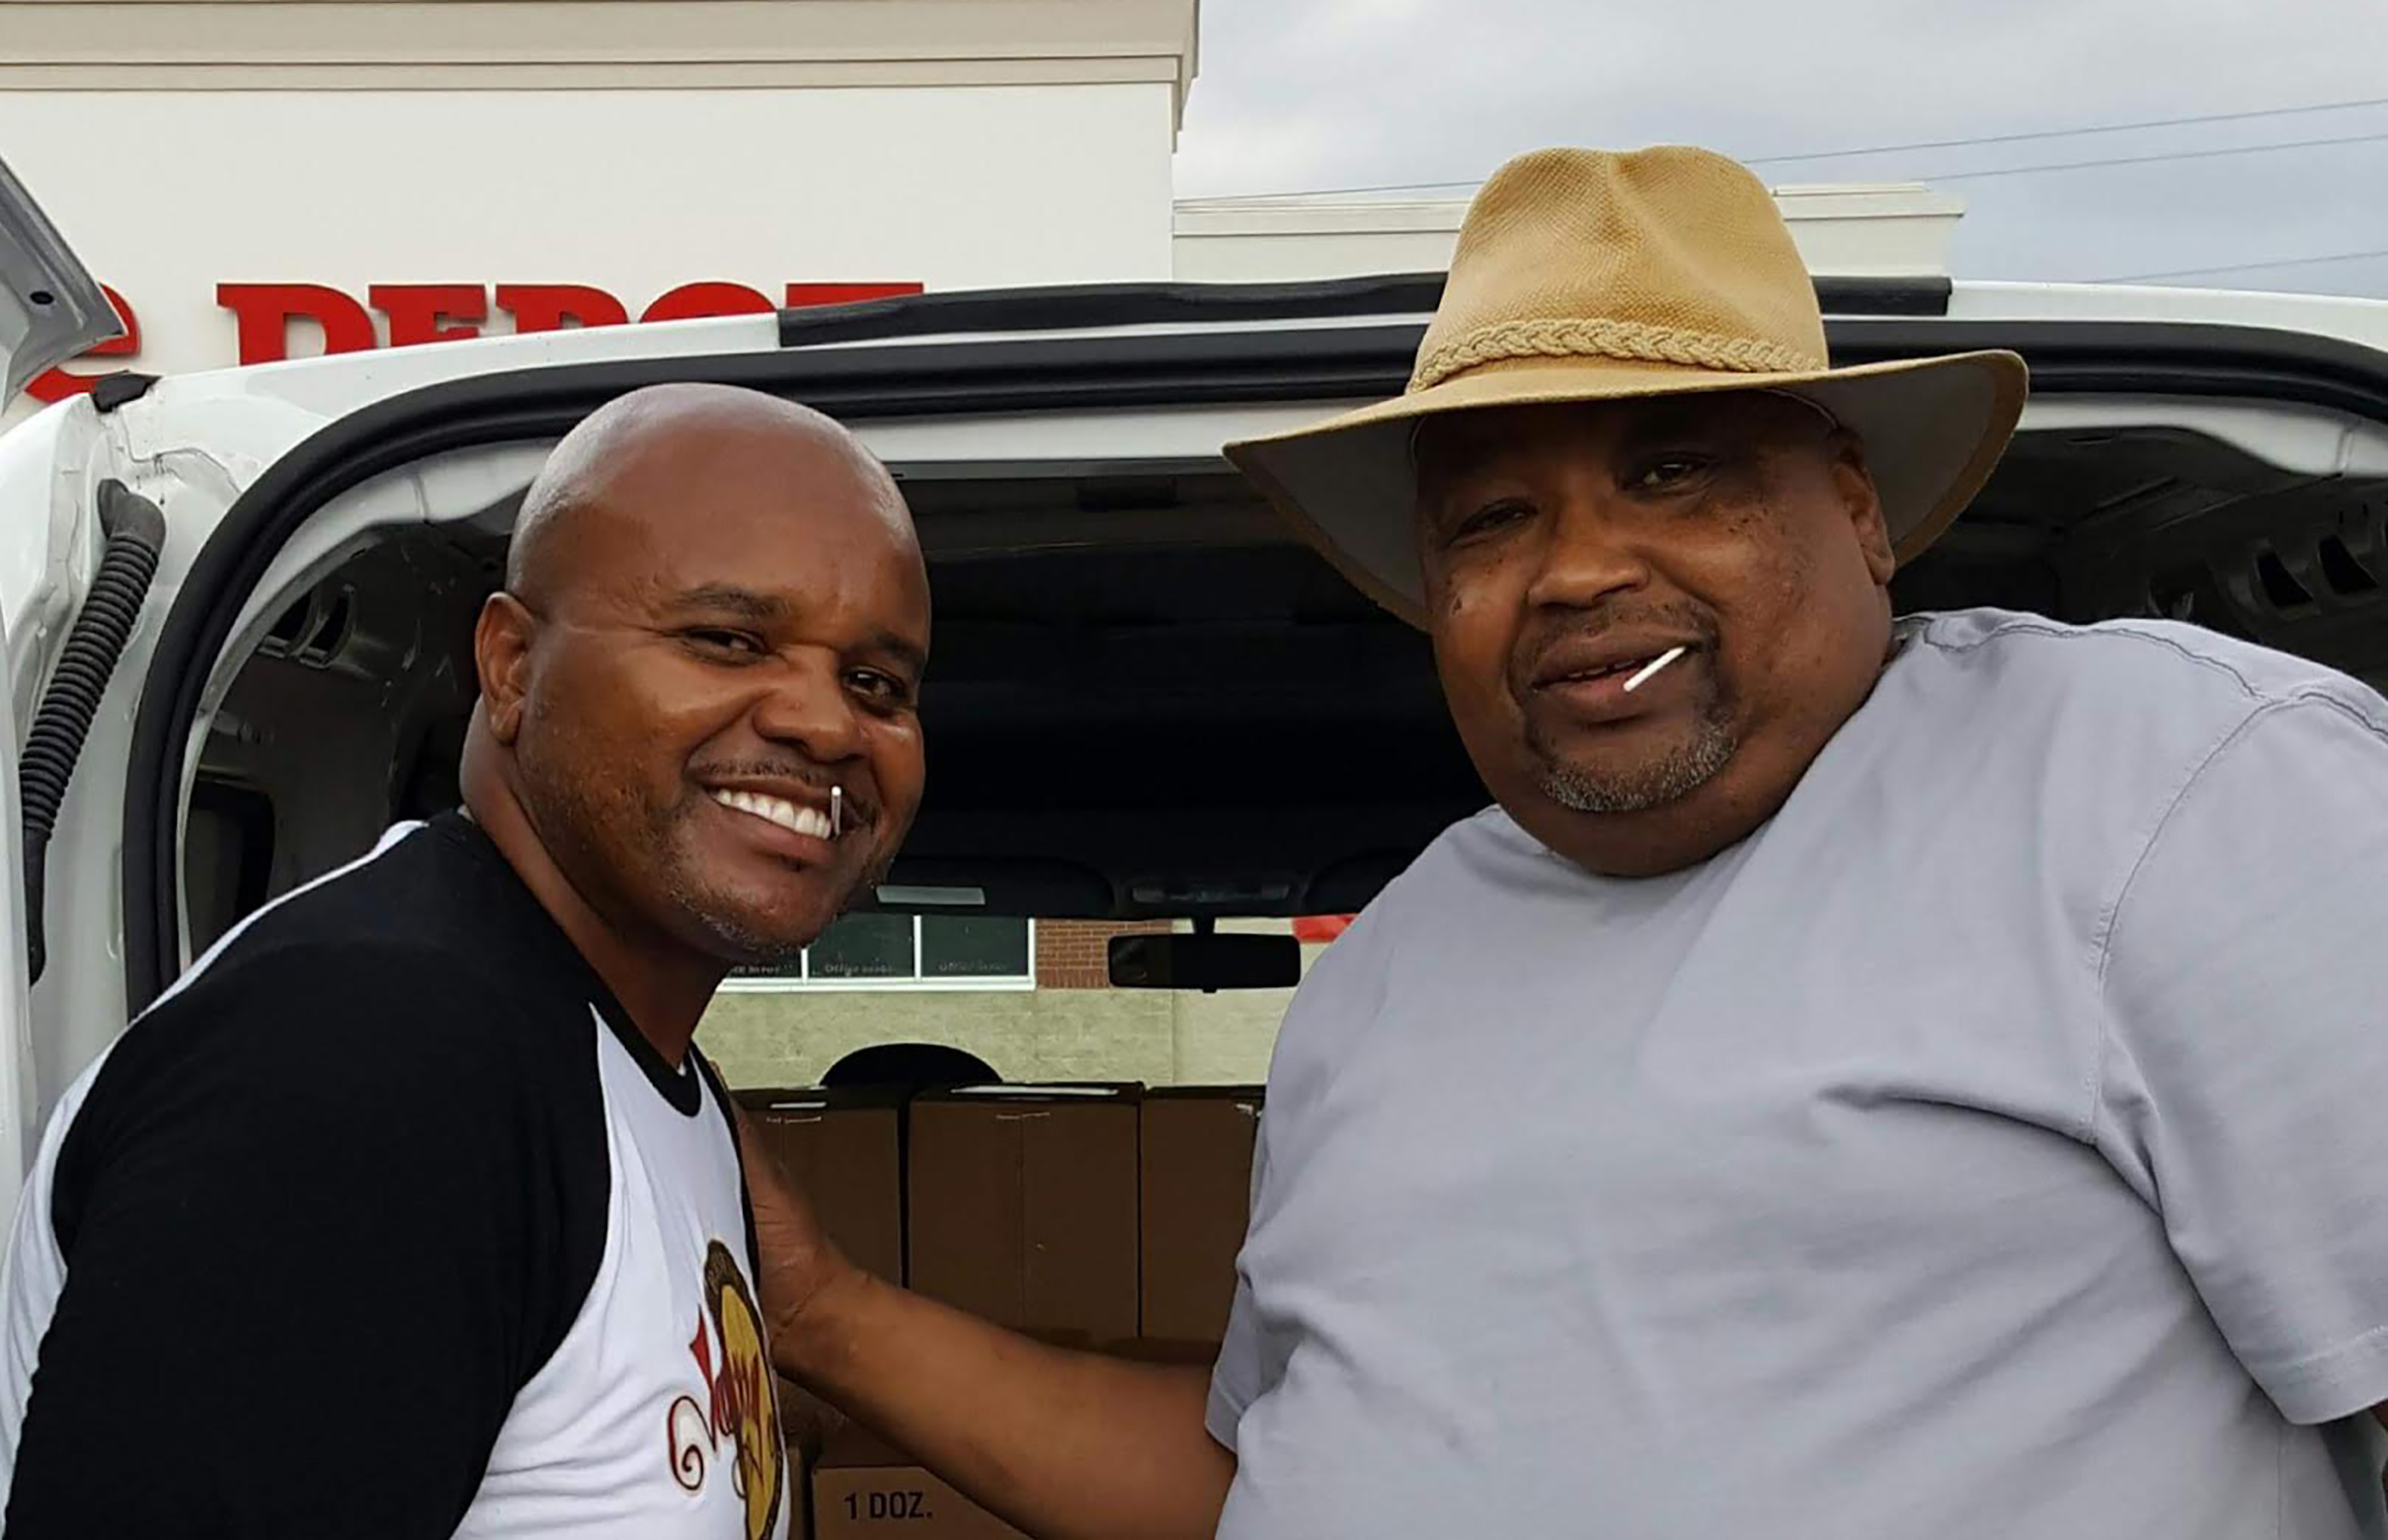 John Perkins of Johnny B's and his father who started the family's successful barbecue joint stand in front of a van.